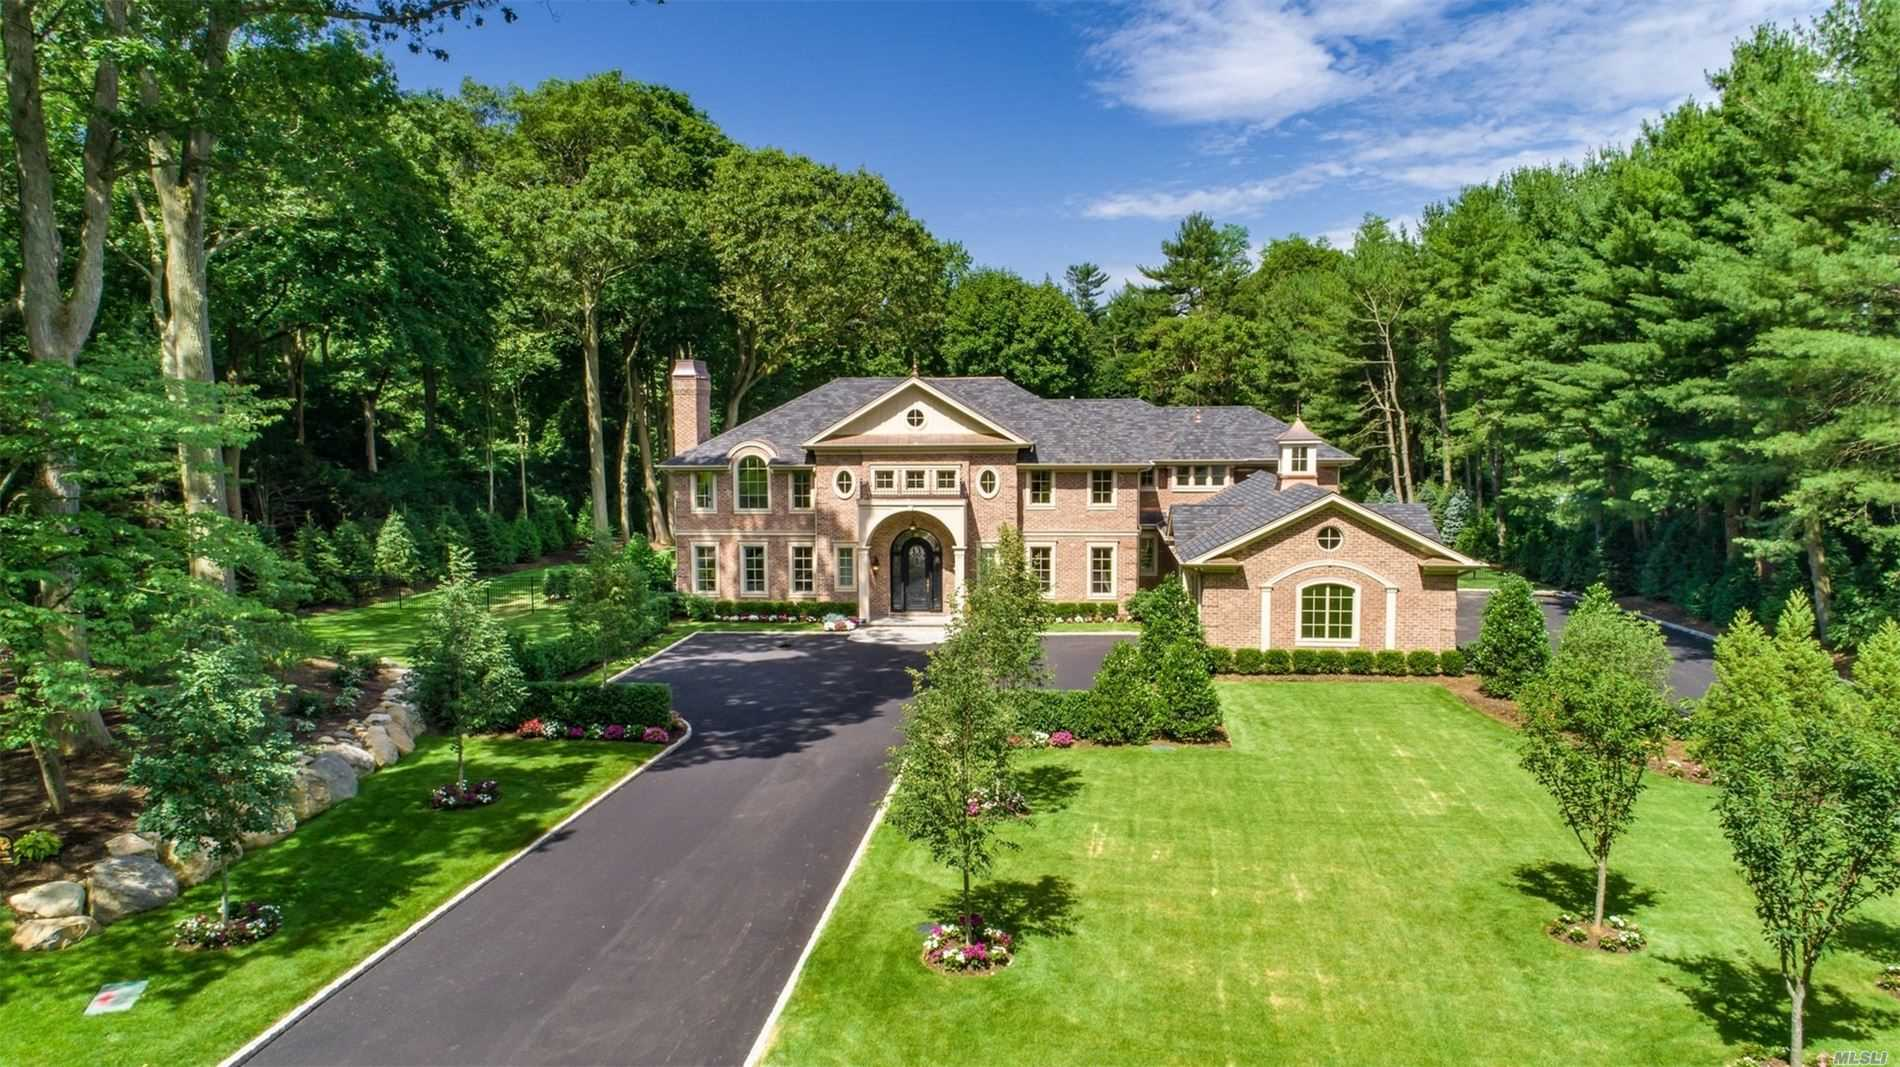 Set on 2 Magnificent Acres in the Village of Old Westbury, this 7500 Square Foot All Brick New Construction is the Ultimate Definition of Quality Craftsmanship and Exceptional Design. Built by Award Winning Rockwell Developers this 6 Bedroom 6.5 Bath Luxury Home Features Custom Ceiling Details and Recessed Wall Panels Throughout, a State of the Art Kitchen, Swimming Pool with Jacuzzi, 3-Car Garage with Custom Doors, Generator and So Much More! East Williston School District.